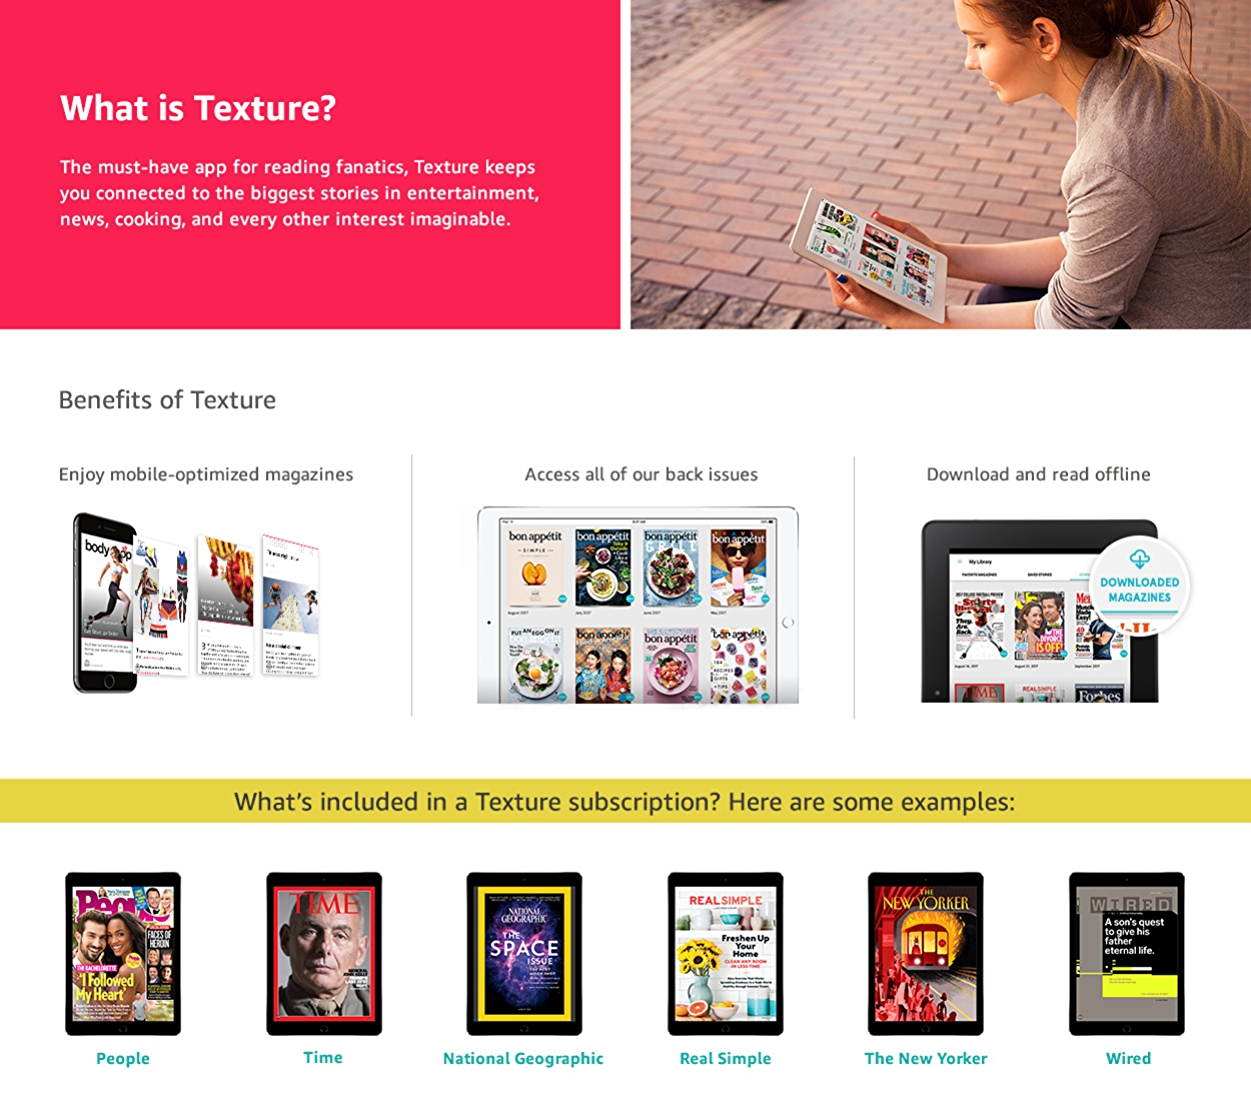 Texture is the app for endless relaxation. Kick back with the premier digital reading experience and have amazing content - from entertainment to news to cooking - anytime you want.